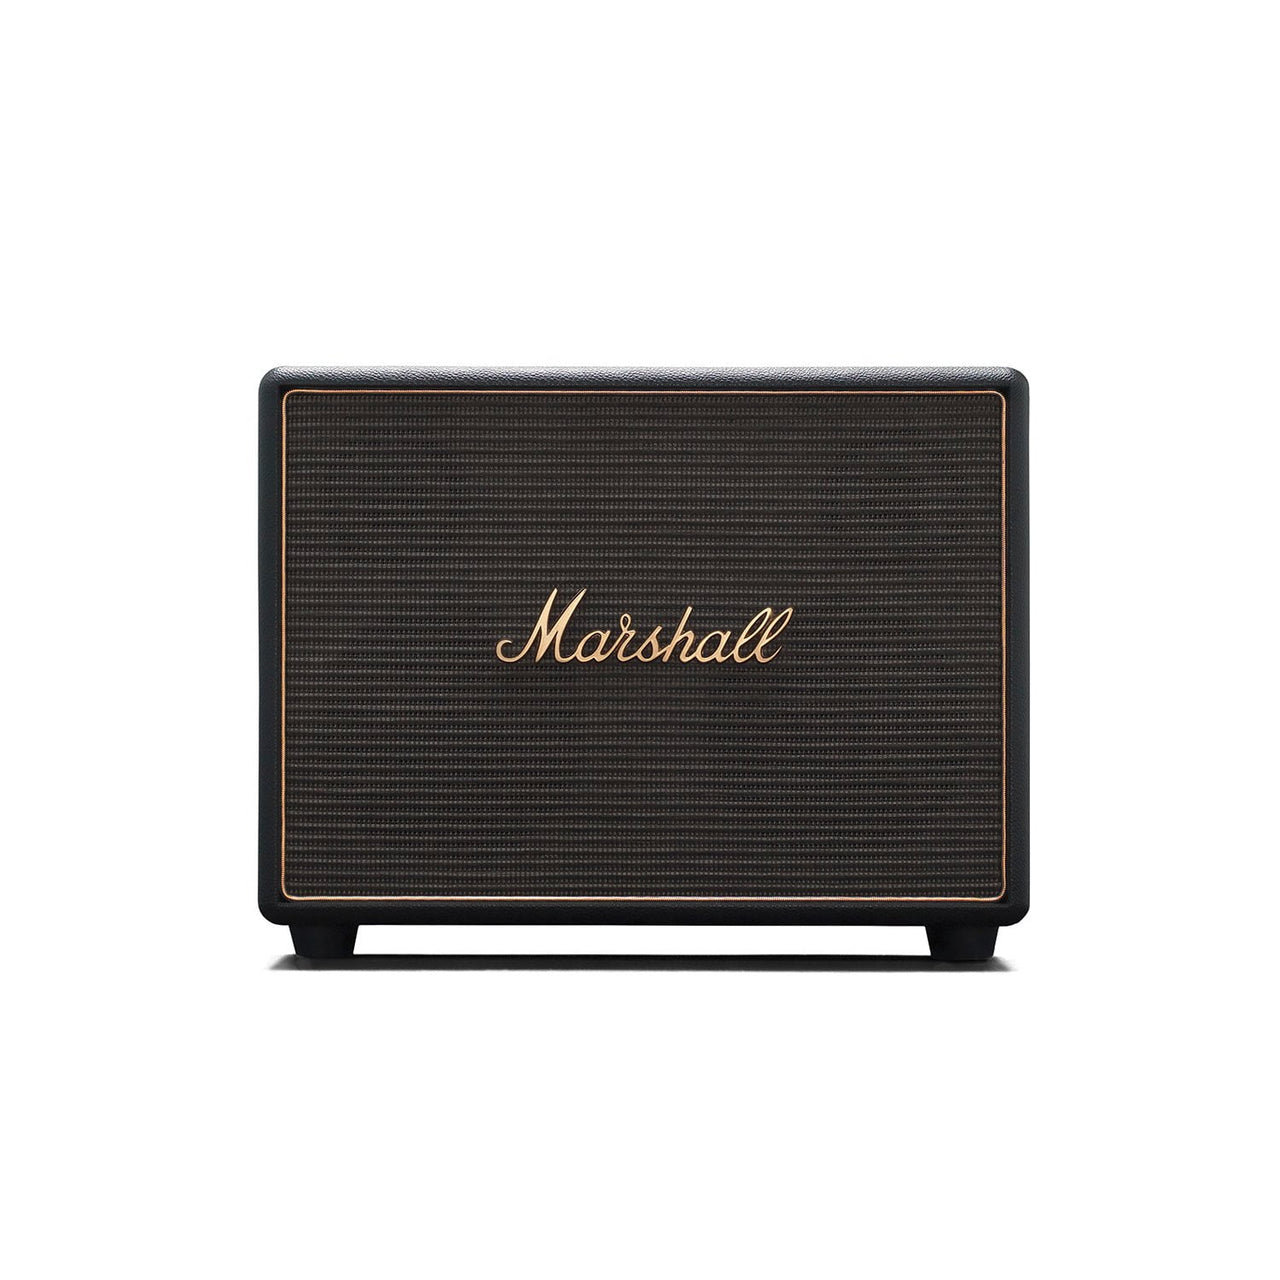 Woburn Multi-room Black, Speakers, Marshall, ASH Asia